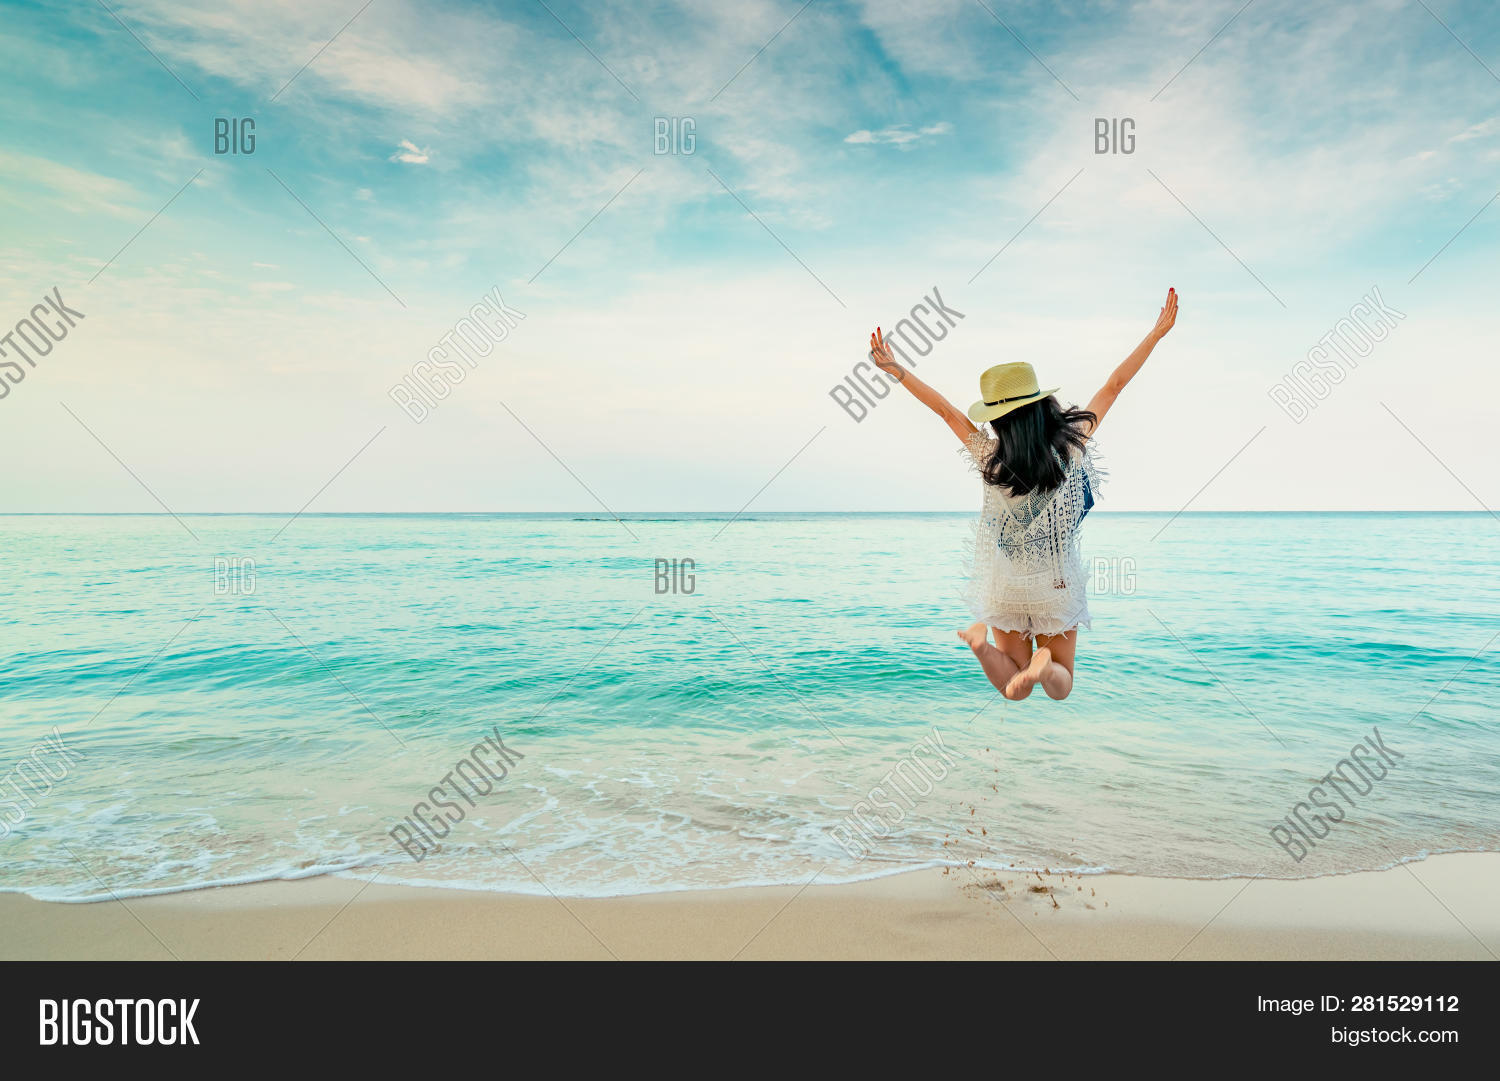 asian,attractive,bay,beach,beautiful,blue,clouds,coast,coastline,destinations,enjoy,fashion,female,freedom,fun,girl,green,hair,happiness,happy,hat,holiday,island,joy,jumping,lifestyle,model,nature,ocean,outdoor,paradise,people,person,relax,sand,sea,seaside,shore,sky,summer,sunglasses,sunny,travel,tropical,turquoise,vacation,water,white,woman,young